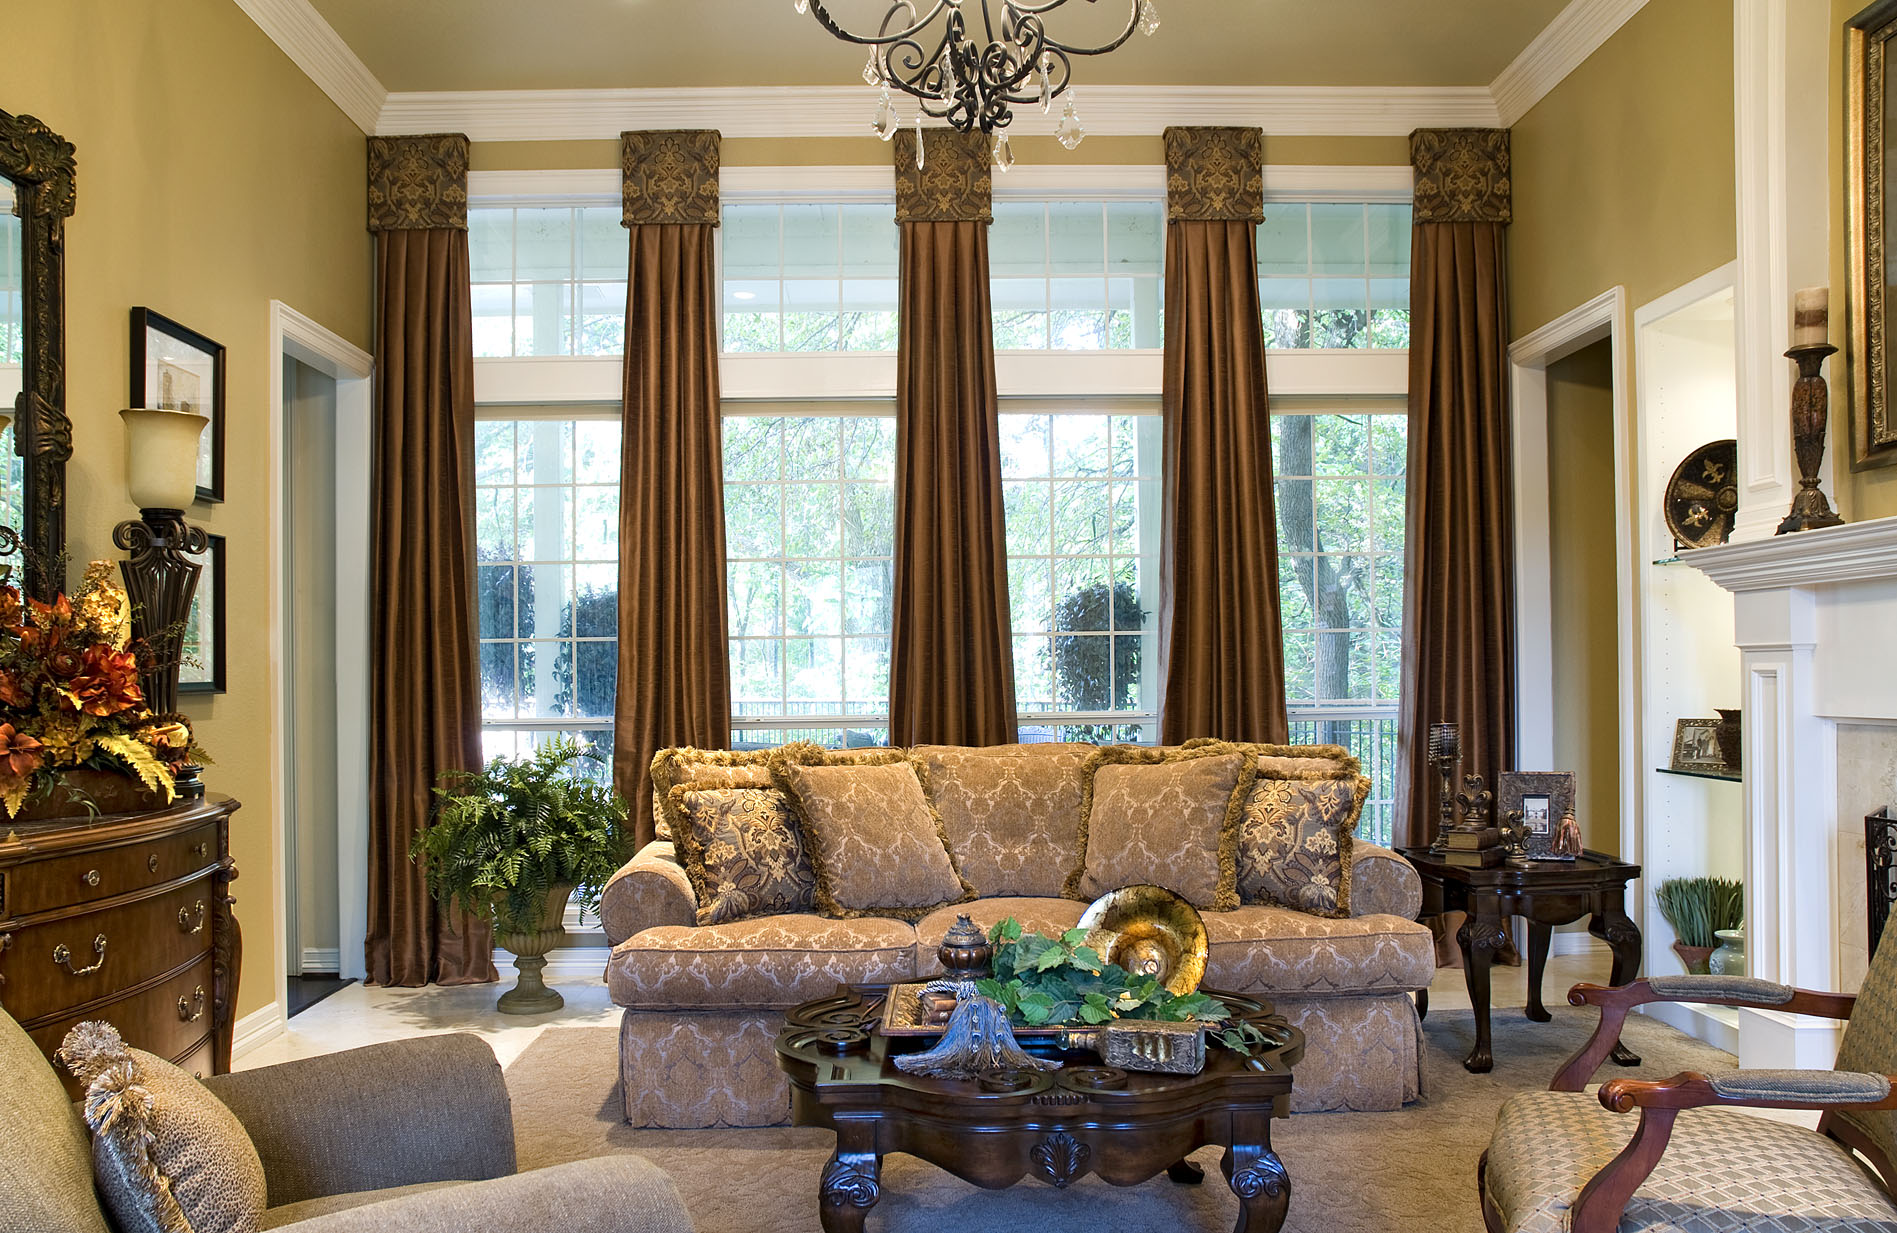 Window Treatments with Drama and Panache! : Decorating Den Interiors Blog u2013 Decorating Tips u0026 Design